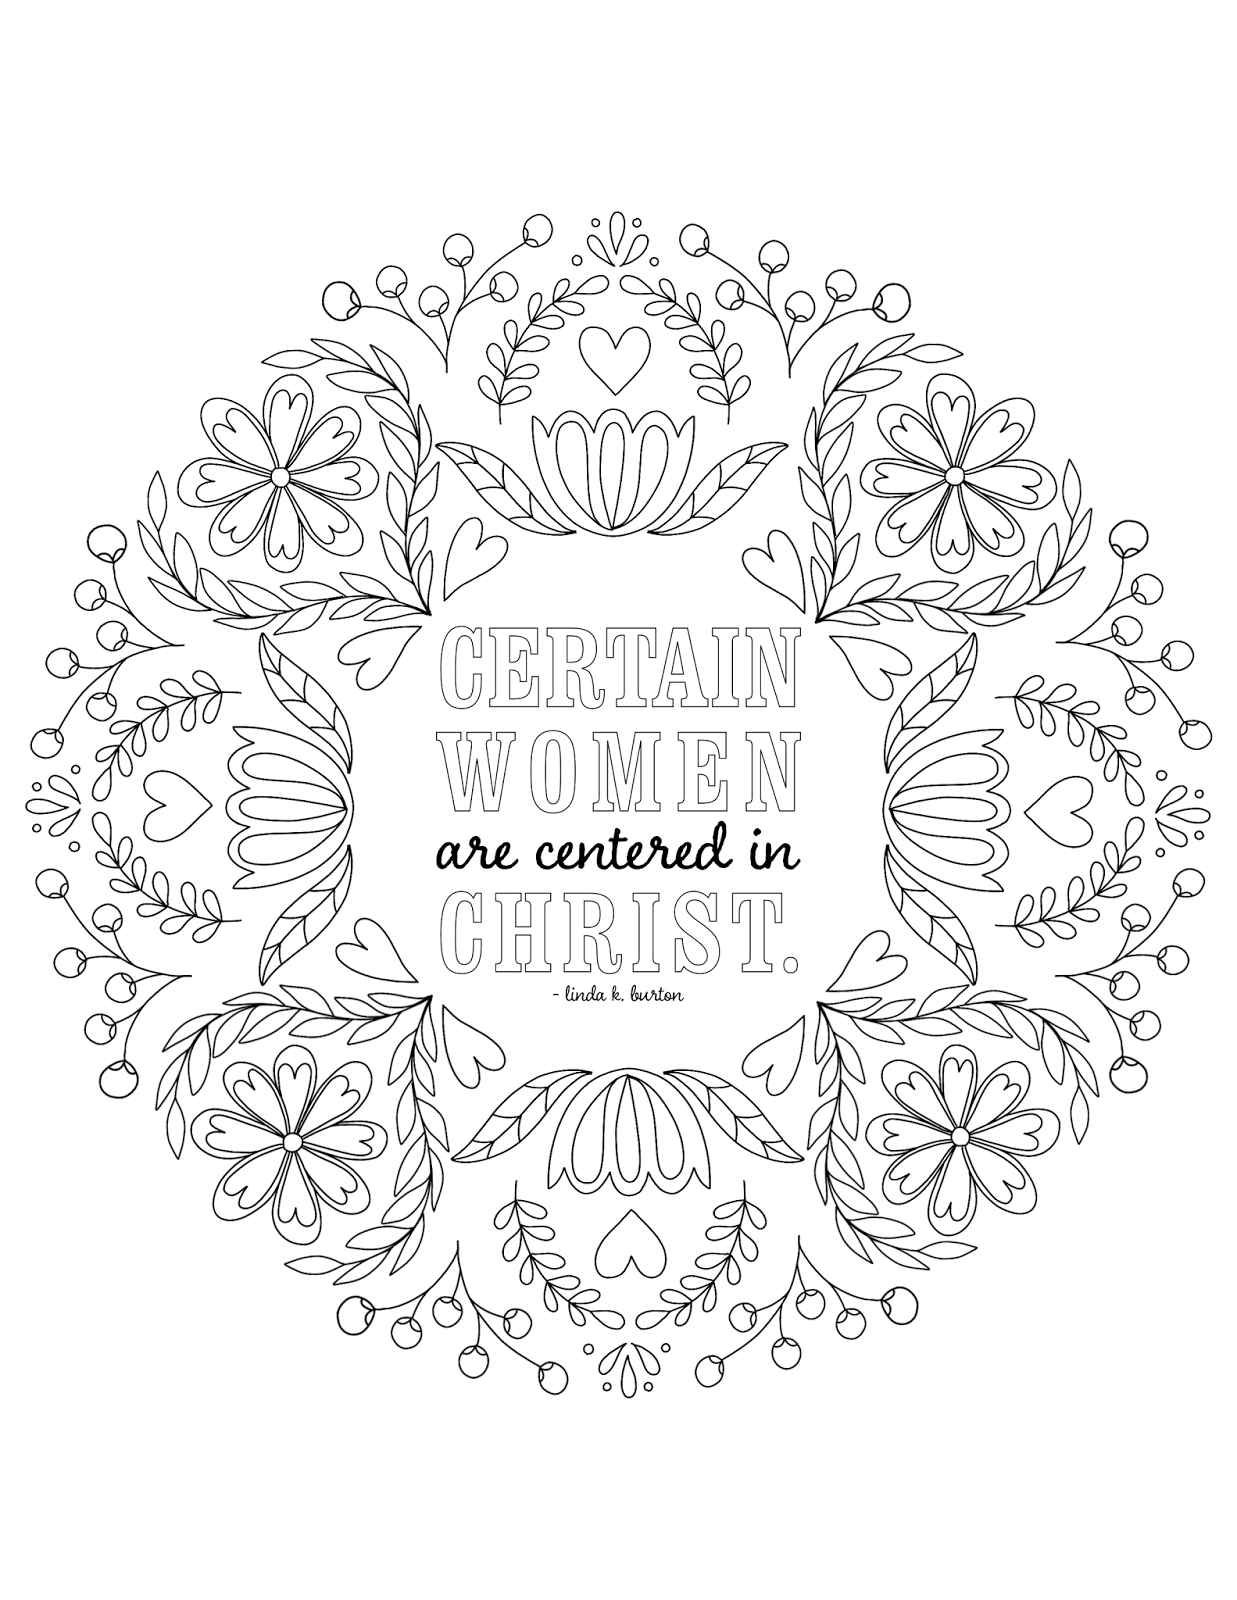 Just What I Squeeze In Certain Women Free Lds Christian Coloring Page Christian Coloring Coloring Pages Love Coloring Pages